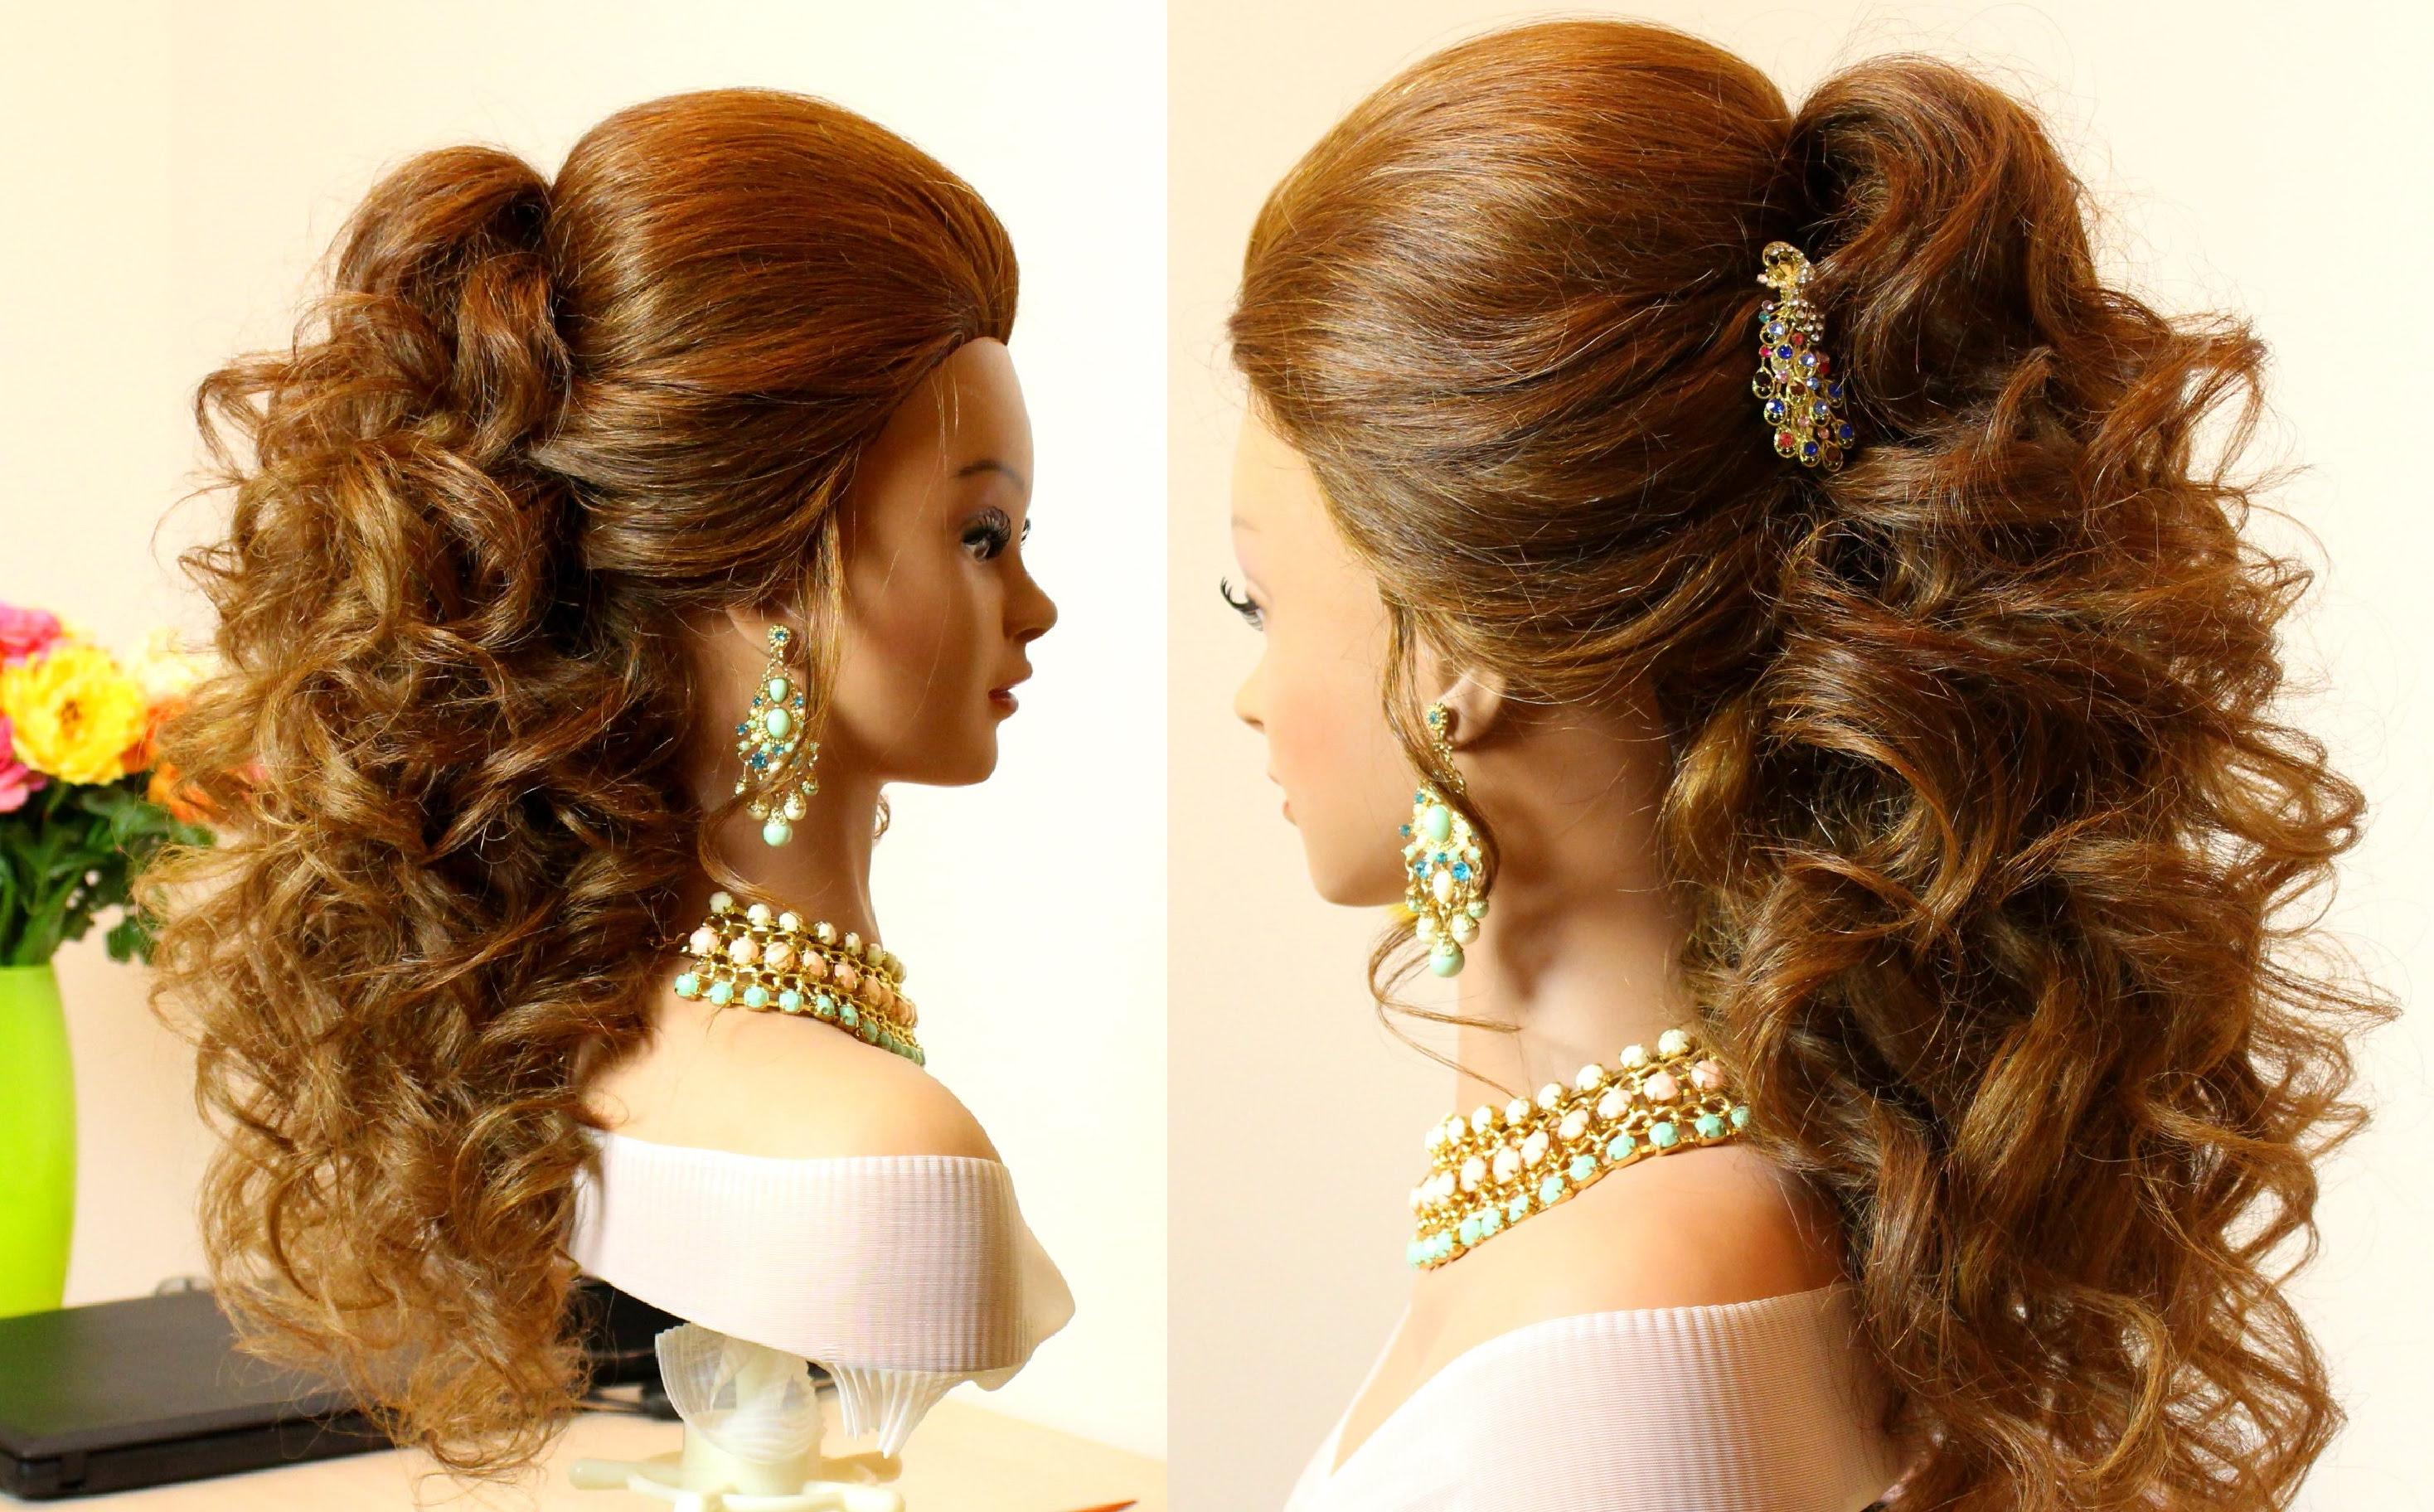 21 Amazing Styles That You Can Do With Your Long Curly Hair – My Within Widely Used Delicate Curly Updo Hairstyles For Wedding (View 2 of 20)